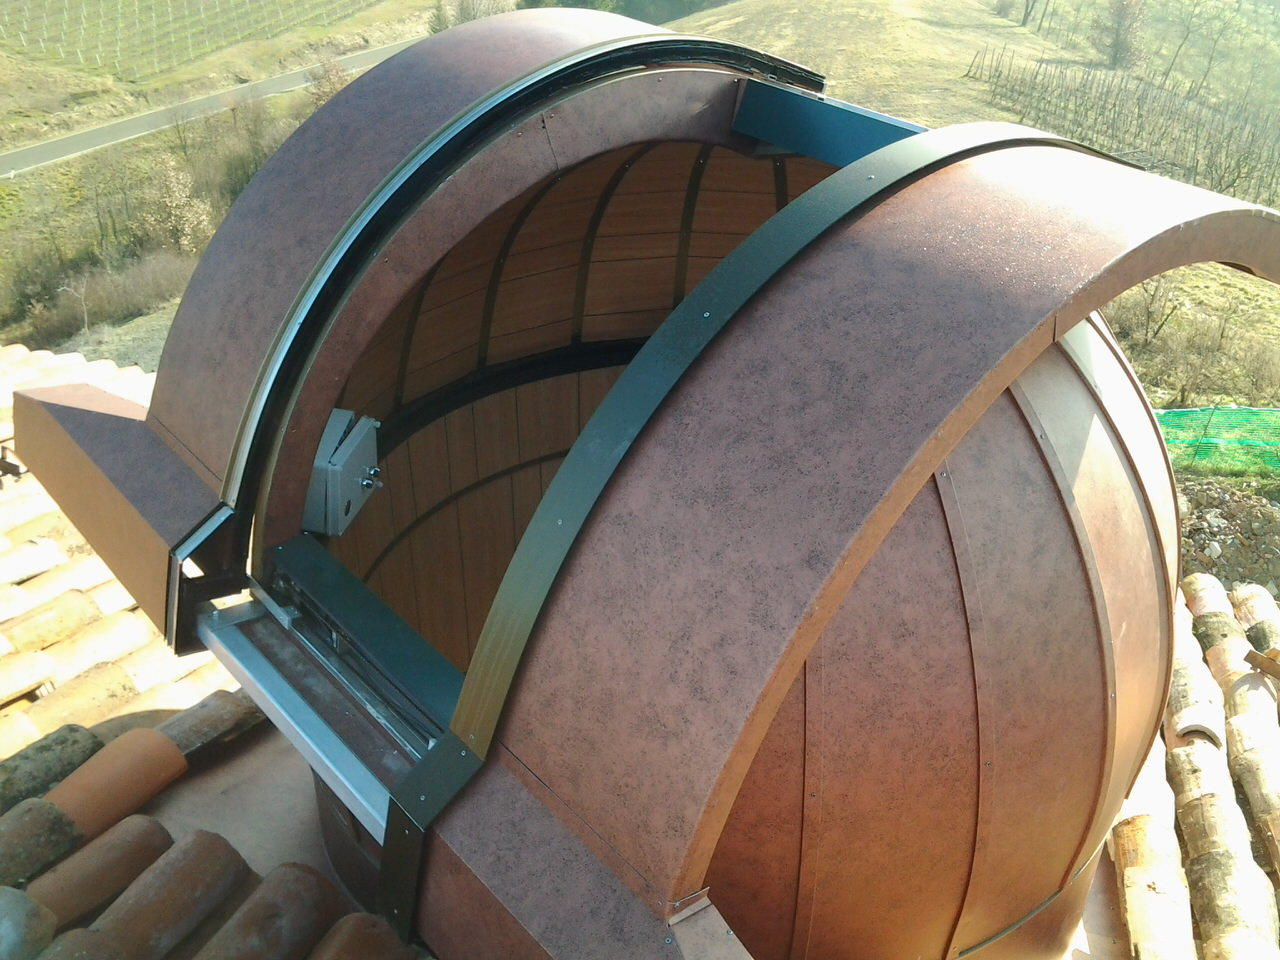 Top view of dome in copper-colored aluminum